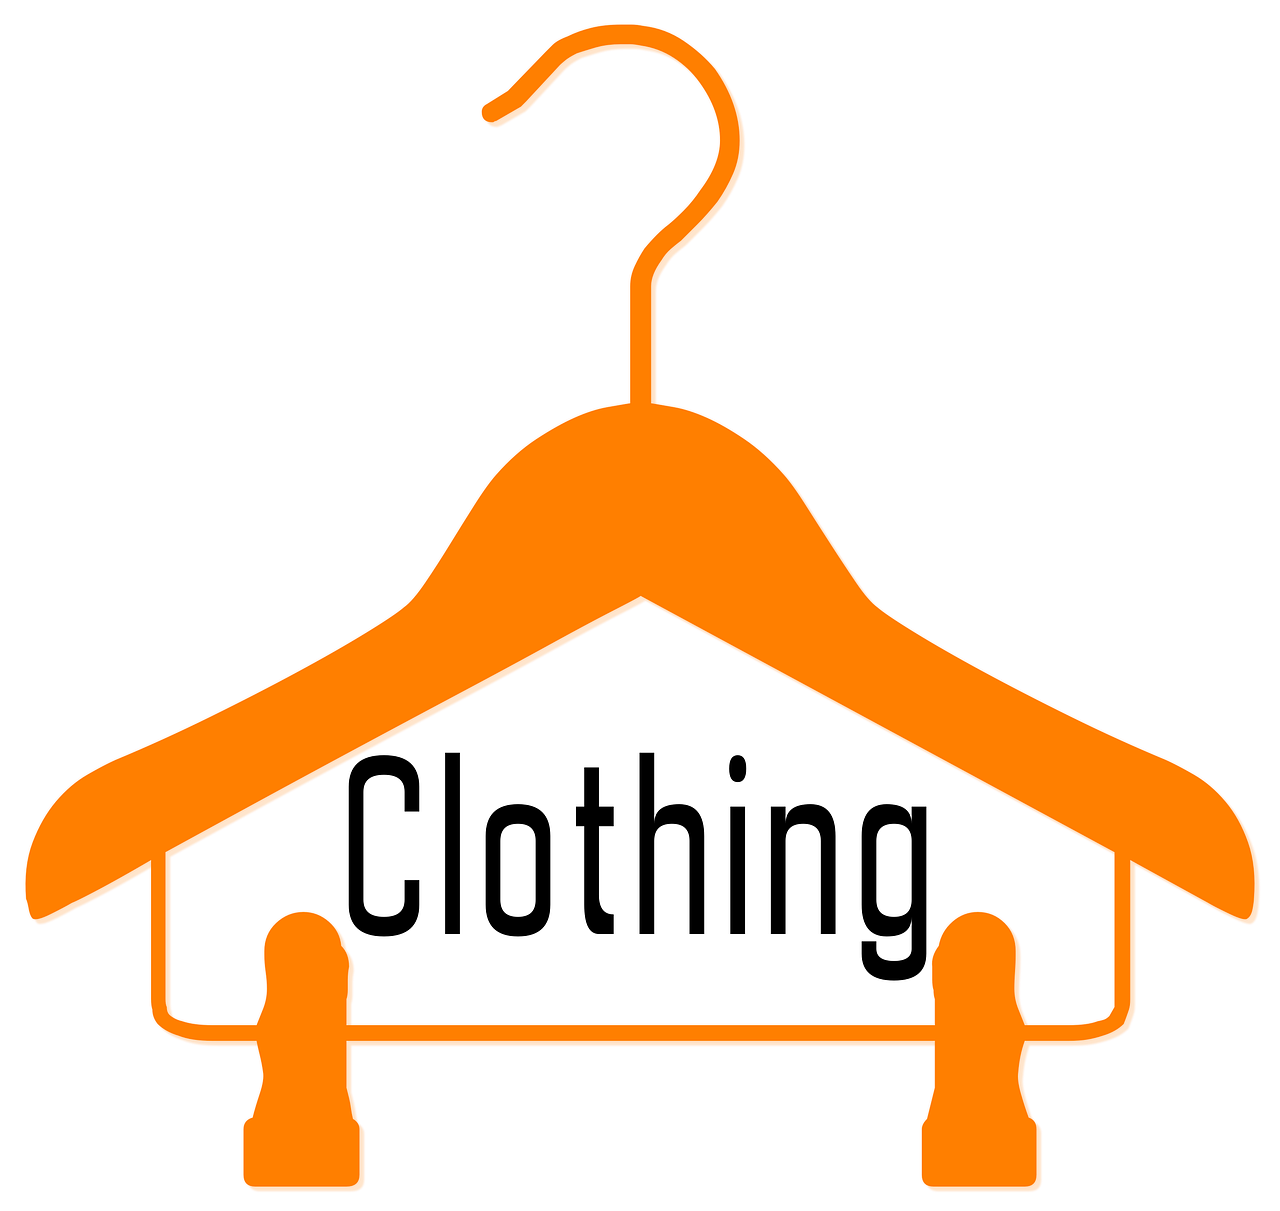 clothing-970846_1280.png